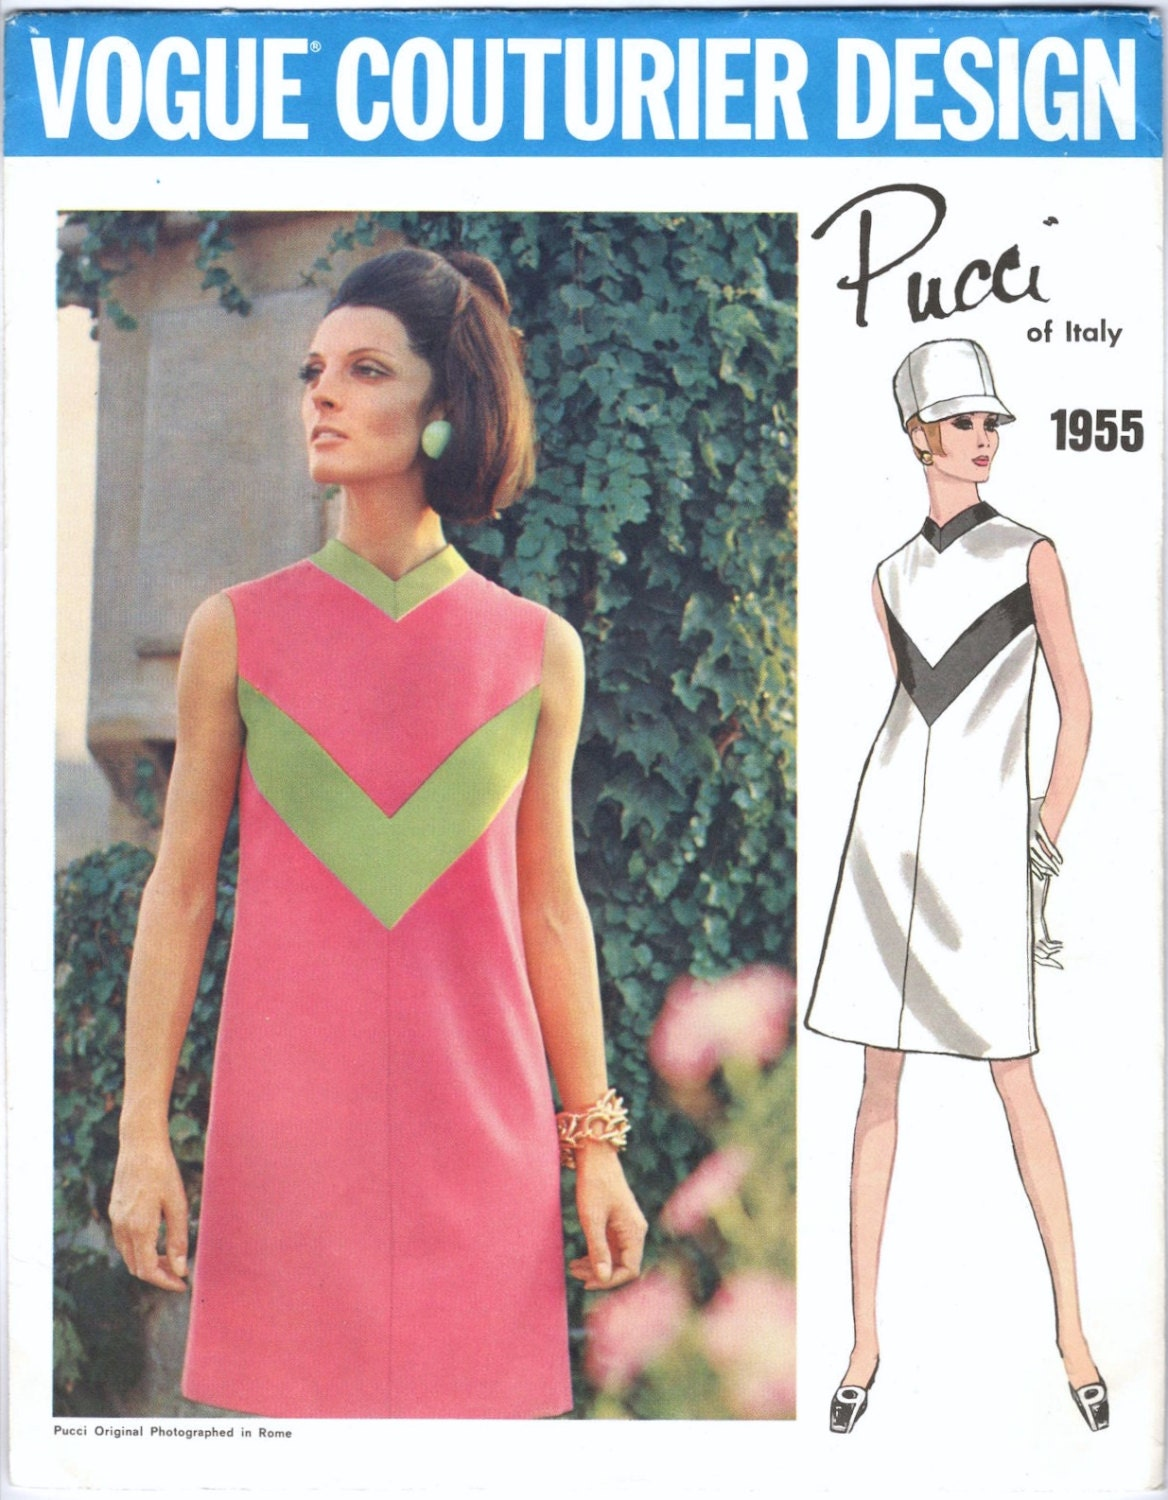 1960s Pucci dress pattern feat. Mirella Petteni Haggiag - Vogue Couturier Design 1955